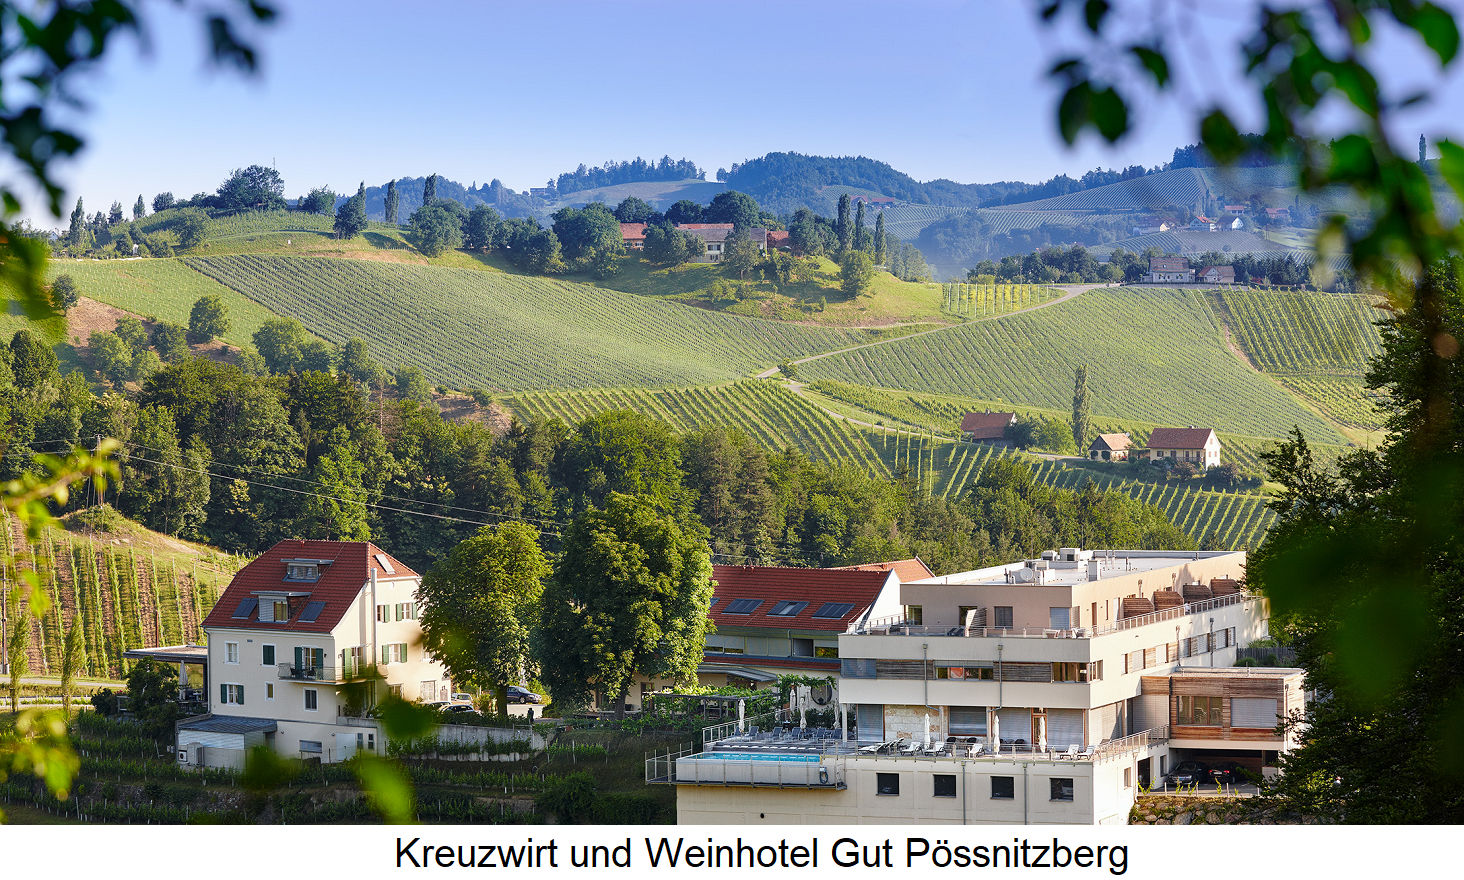 Polz Erich and Walter - Kreuzwirt and Weinhotel Gut Pössnitzberg